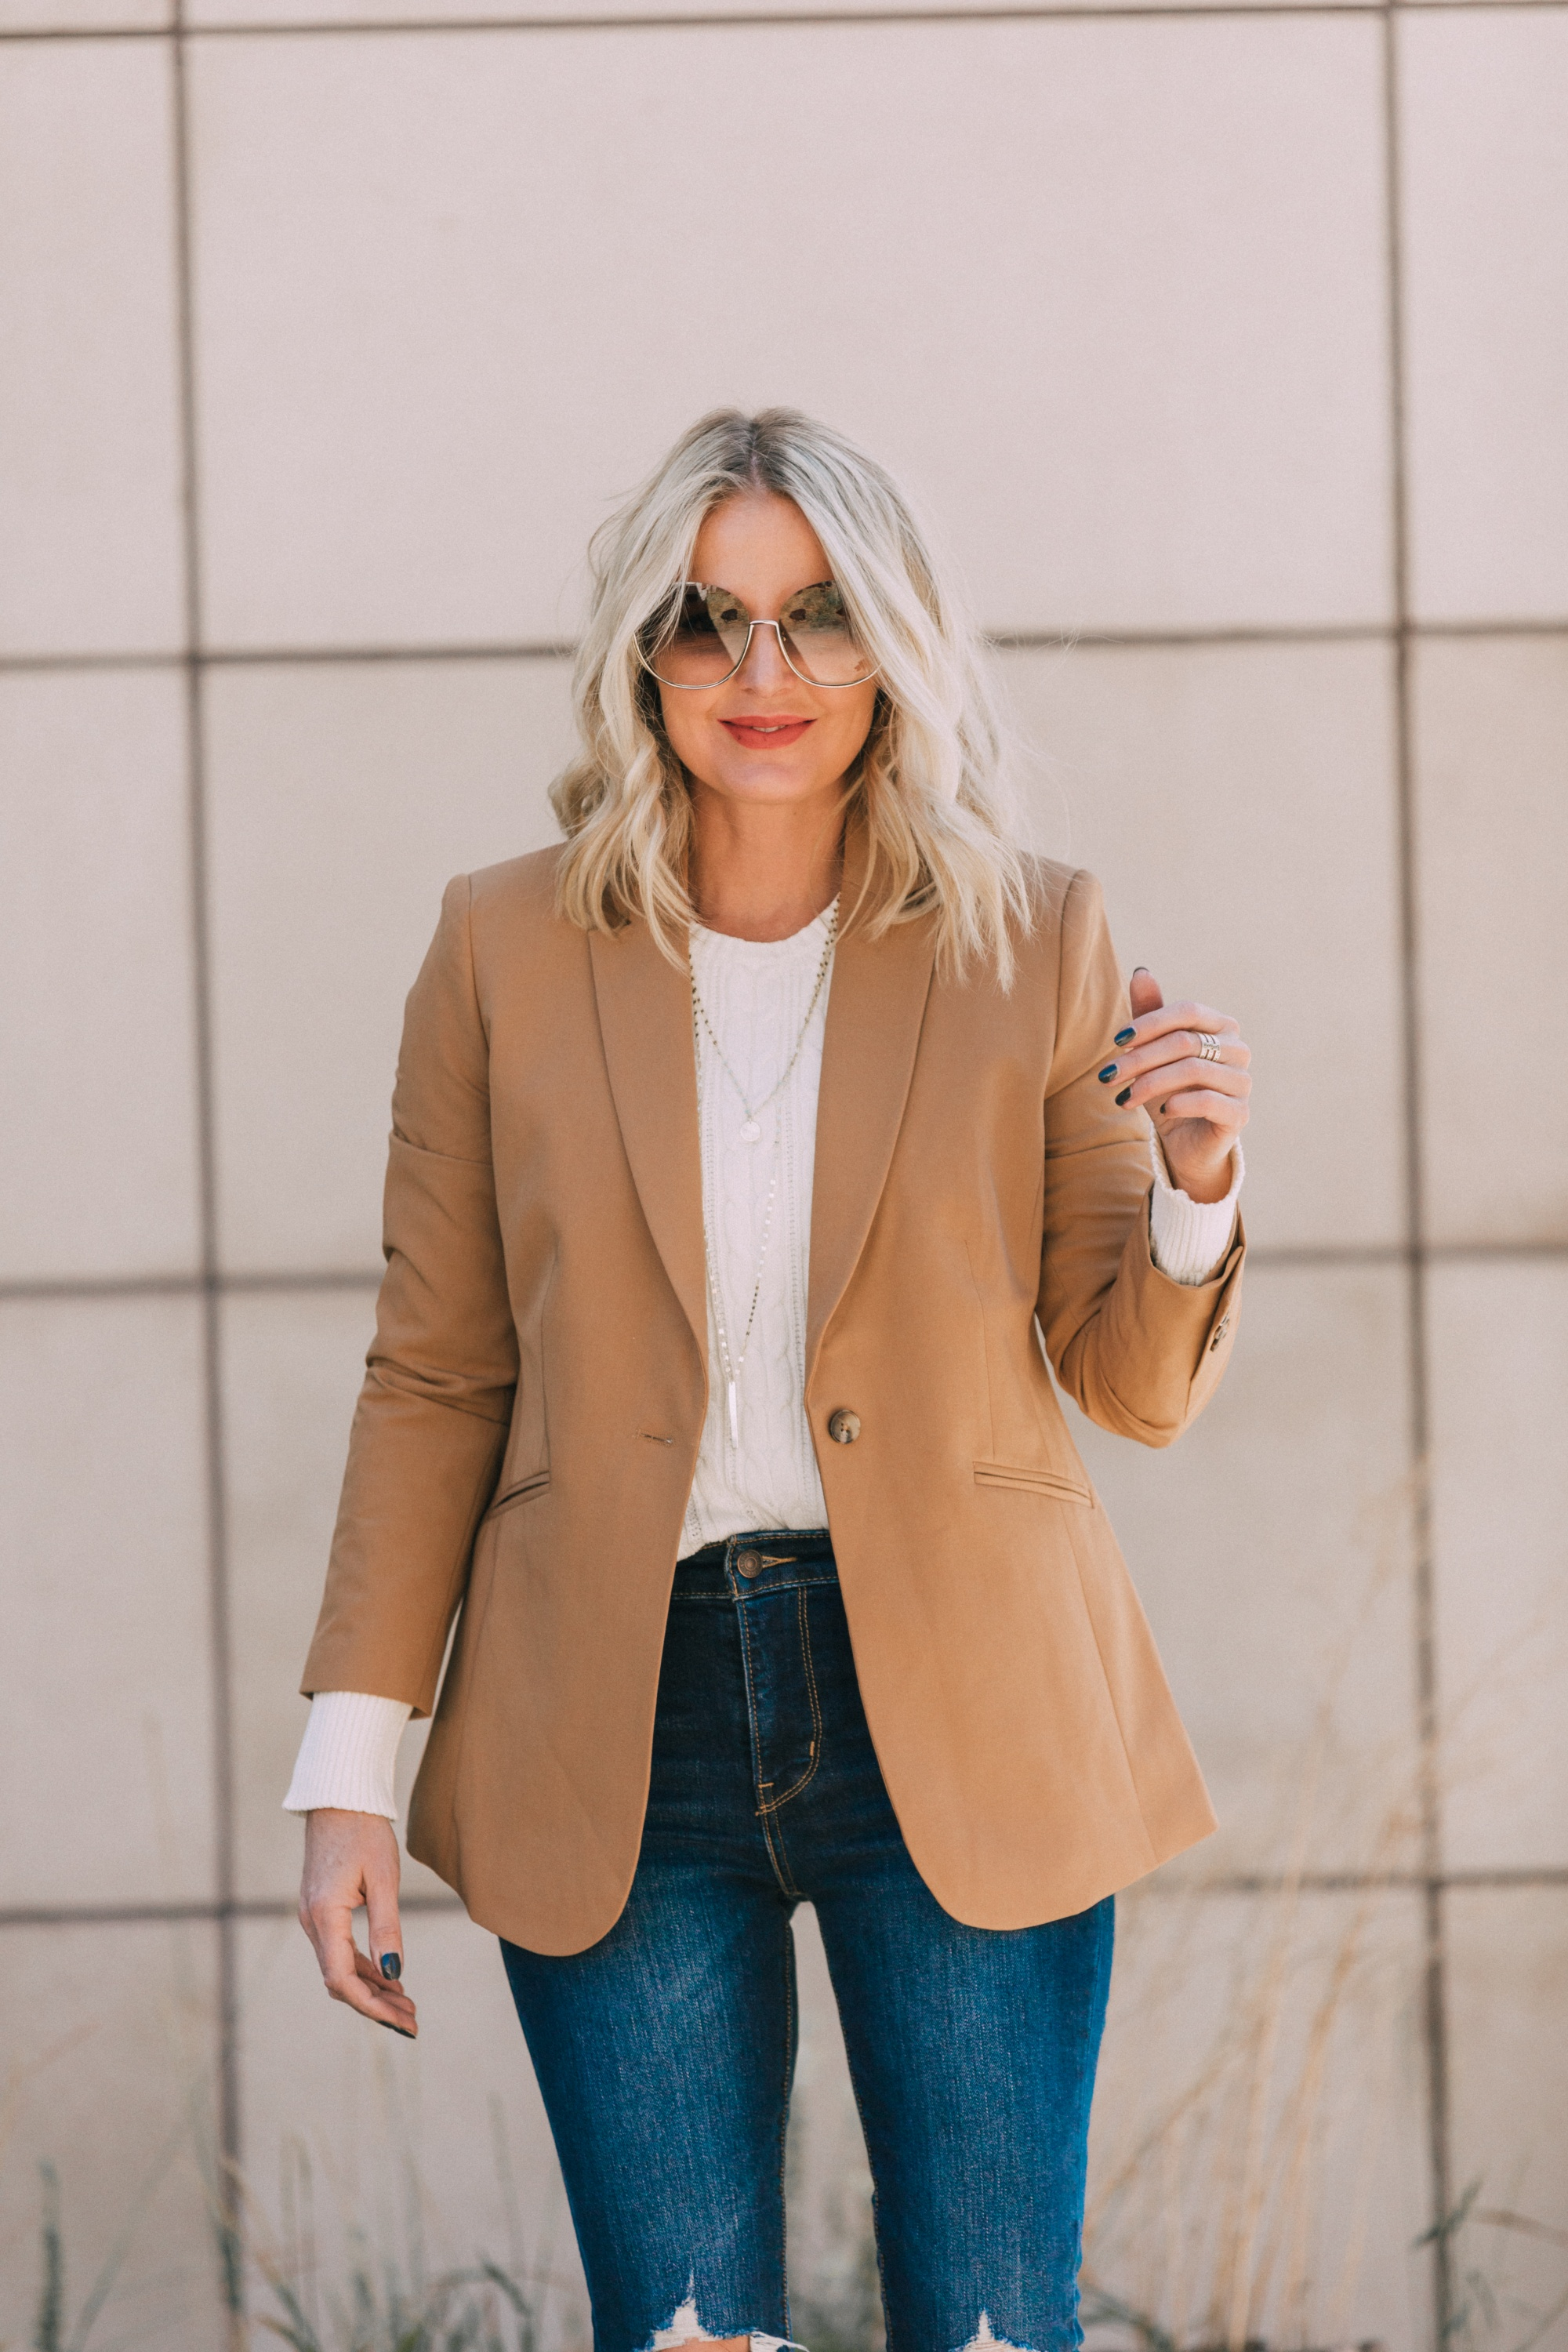 affordable camel colored blazer with blue jeans and white cable knit sweater outfit